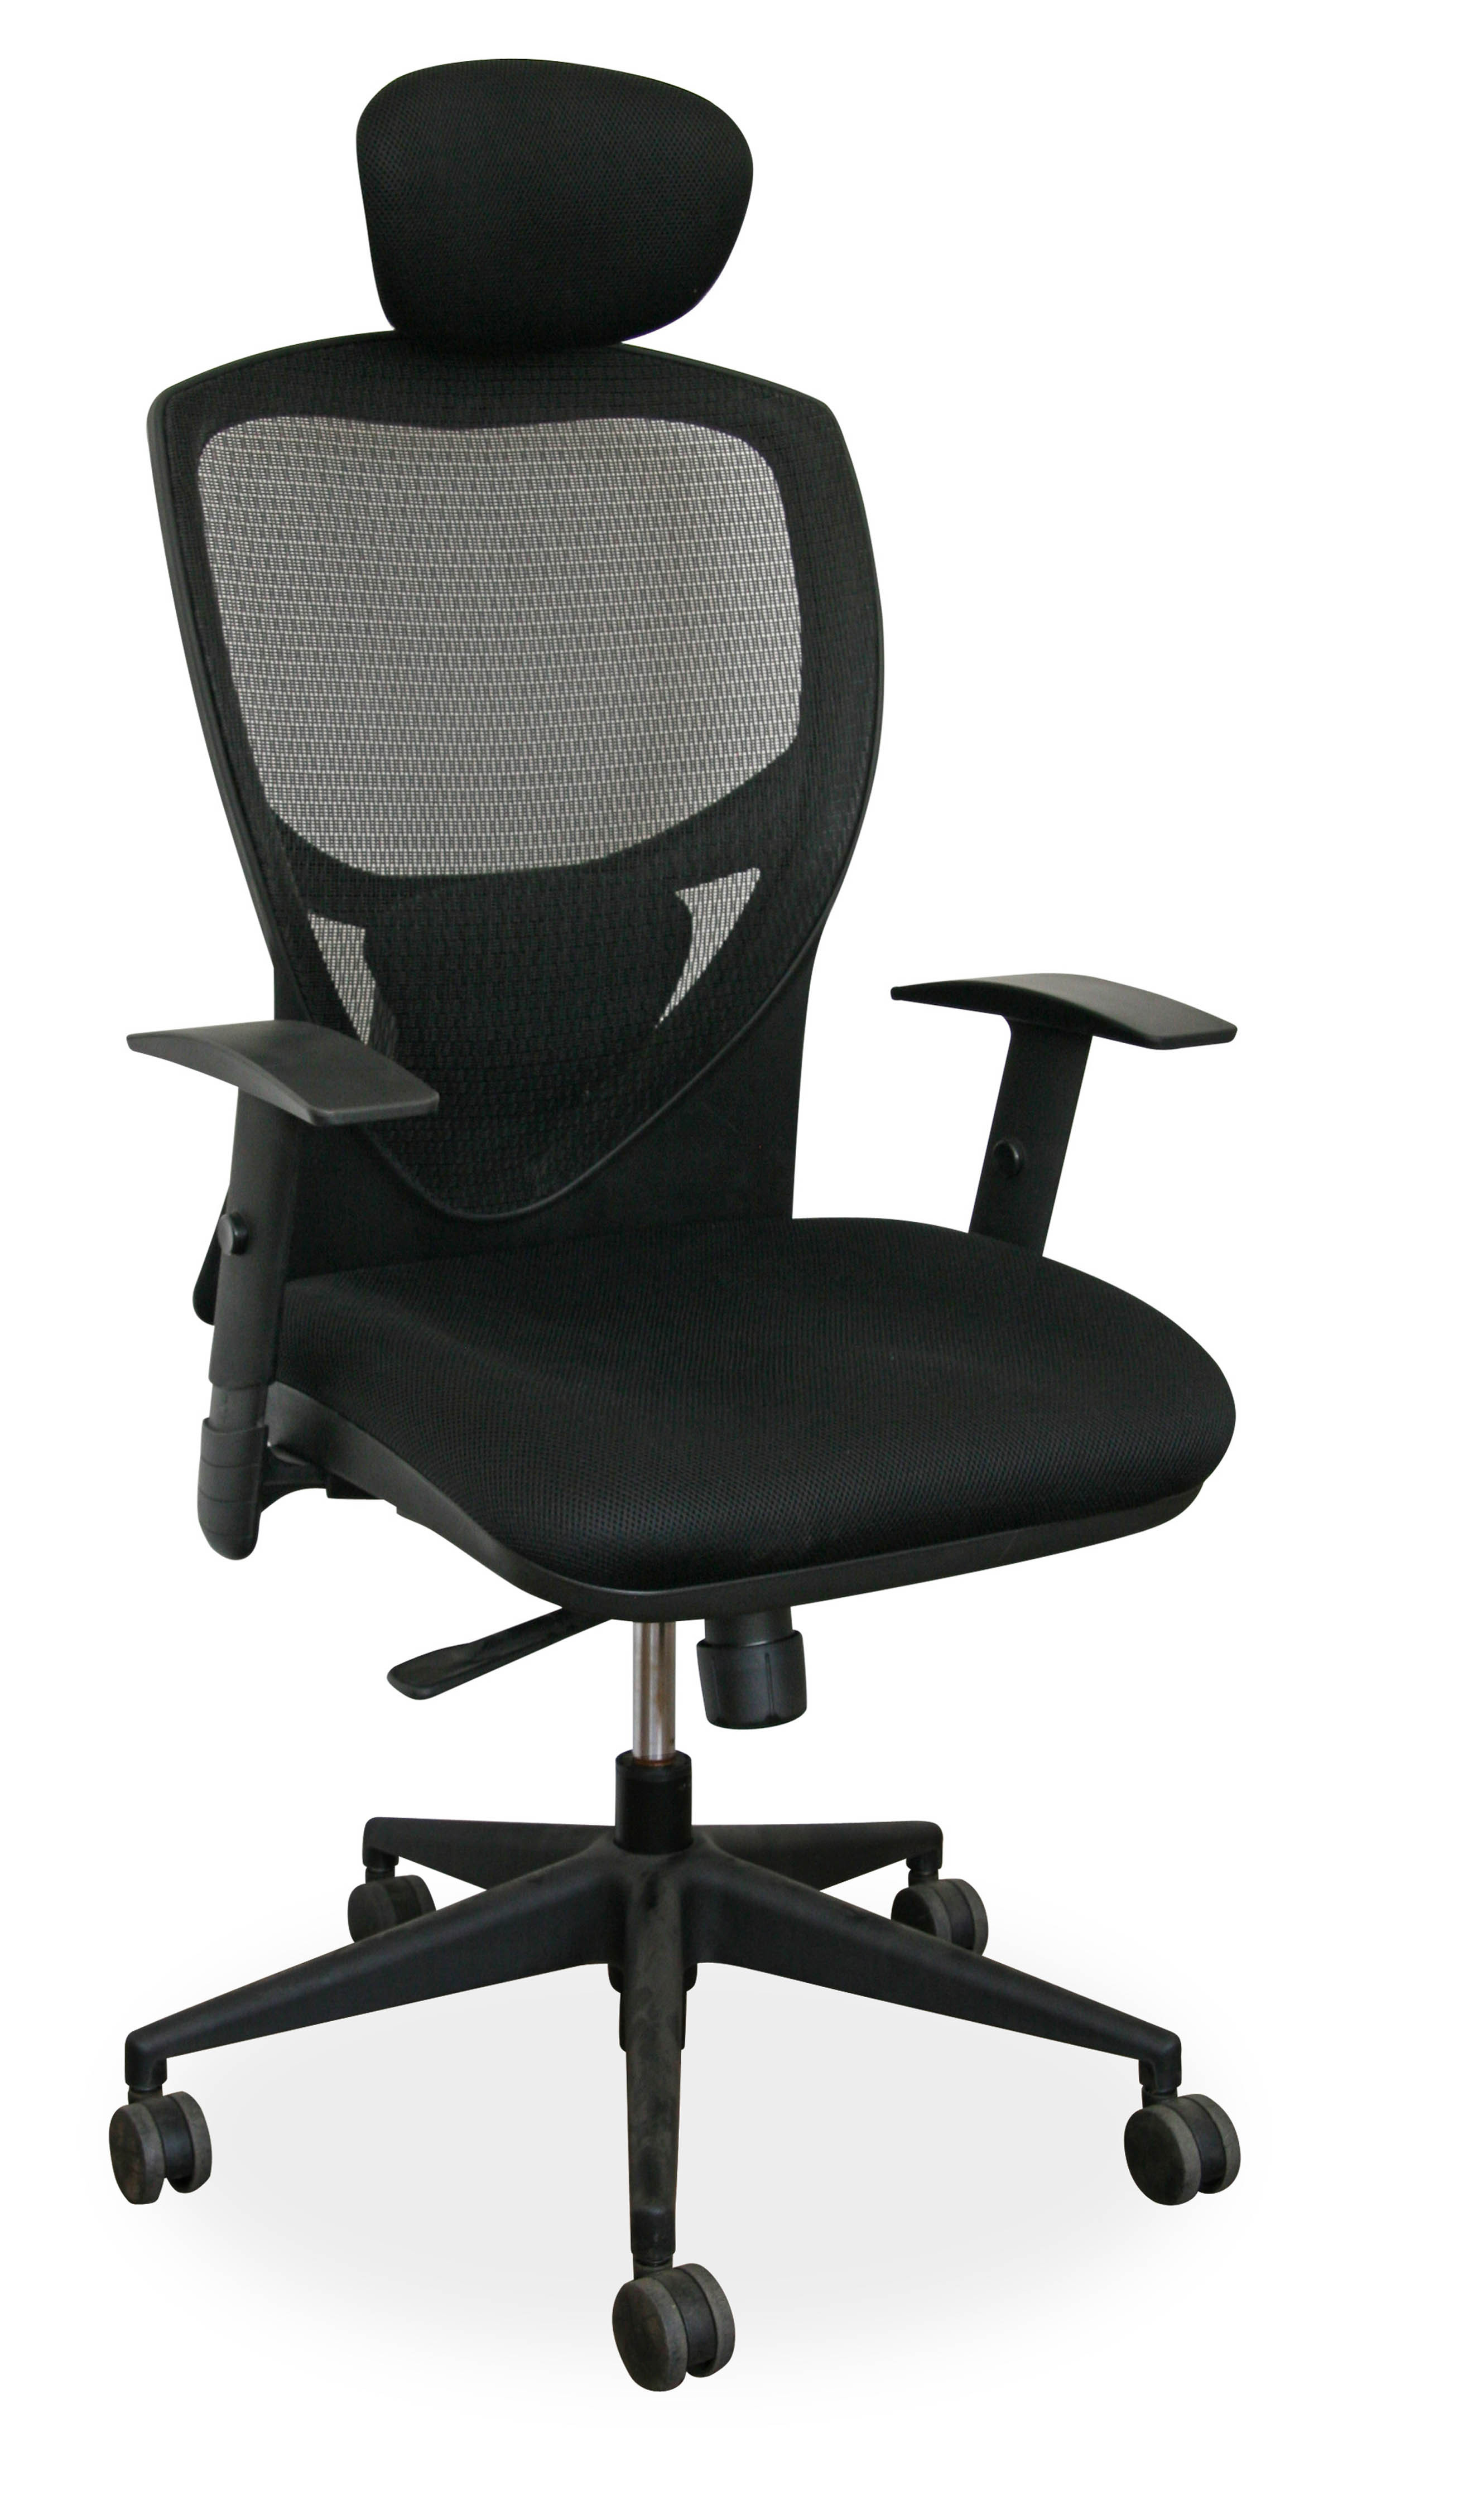 Best ideas about High Office Chair . Save or Pin Highback fice Chairs Now.